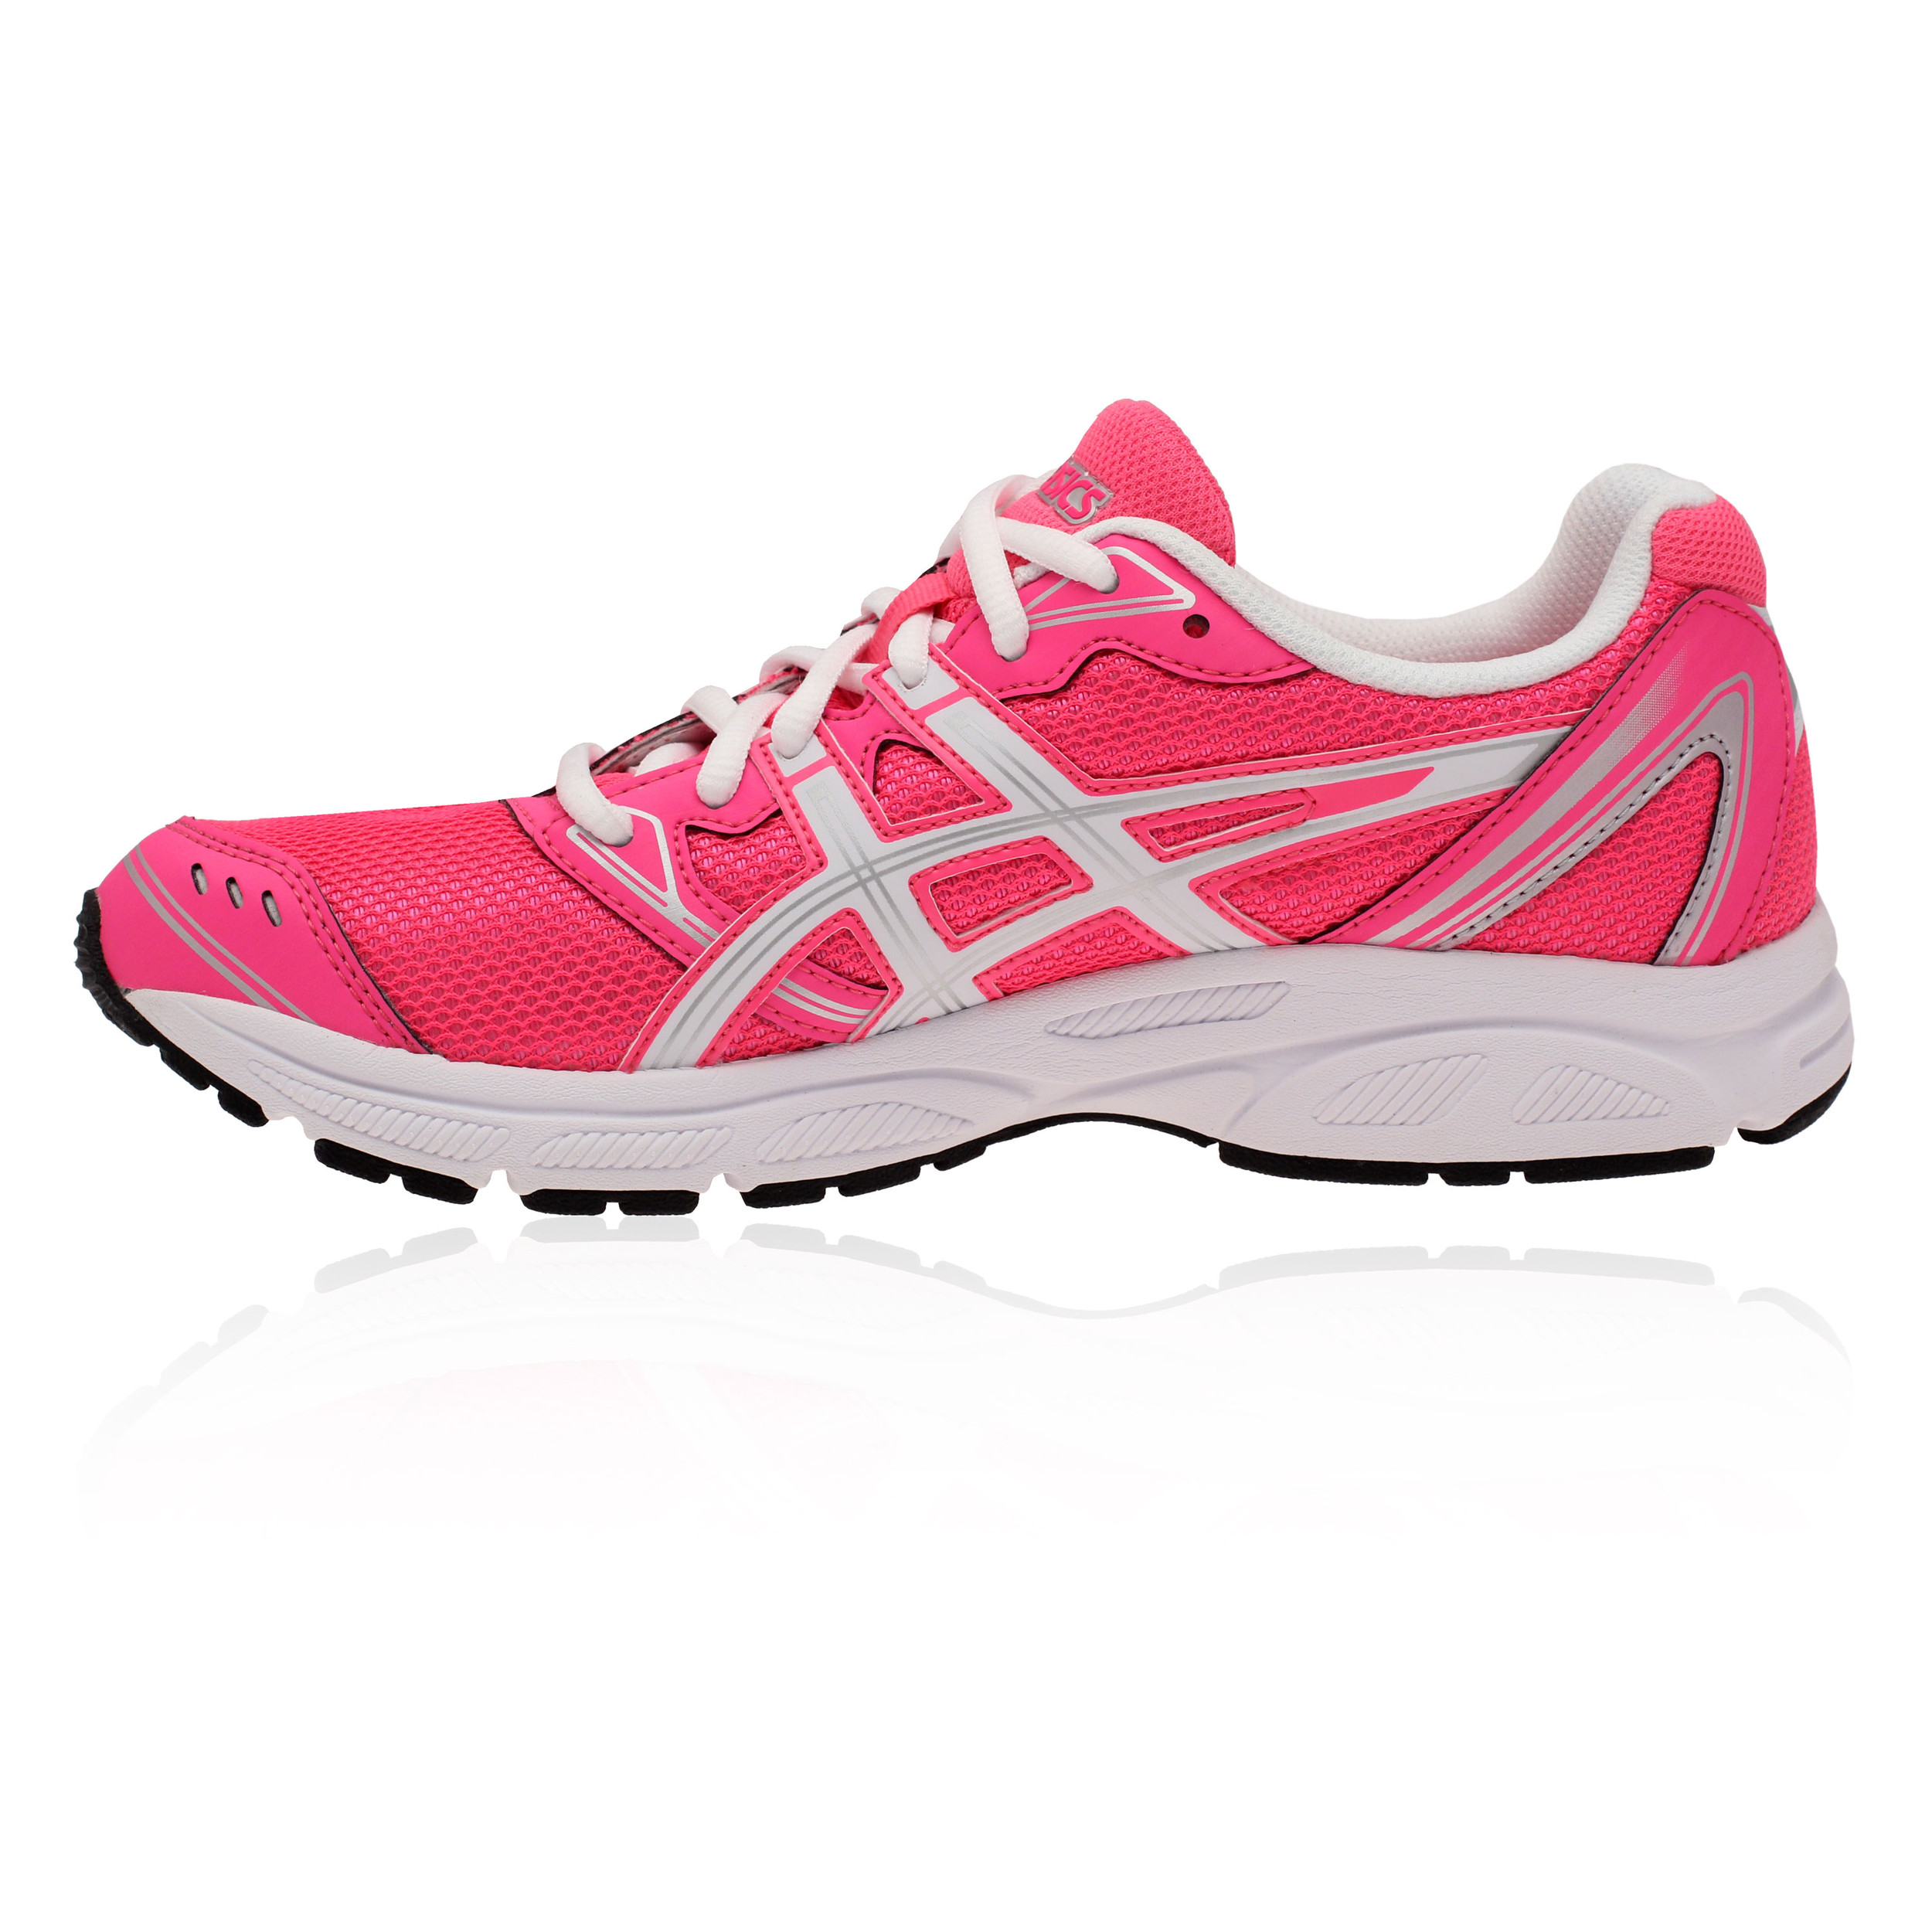 asics patriot 6 womens pink white lightweight cushioned